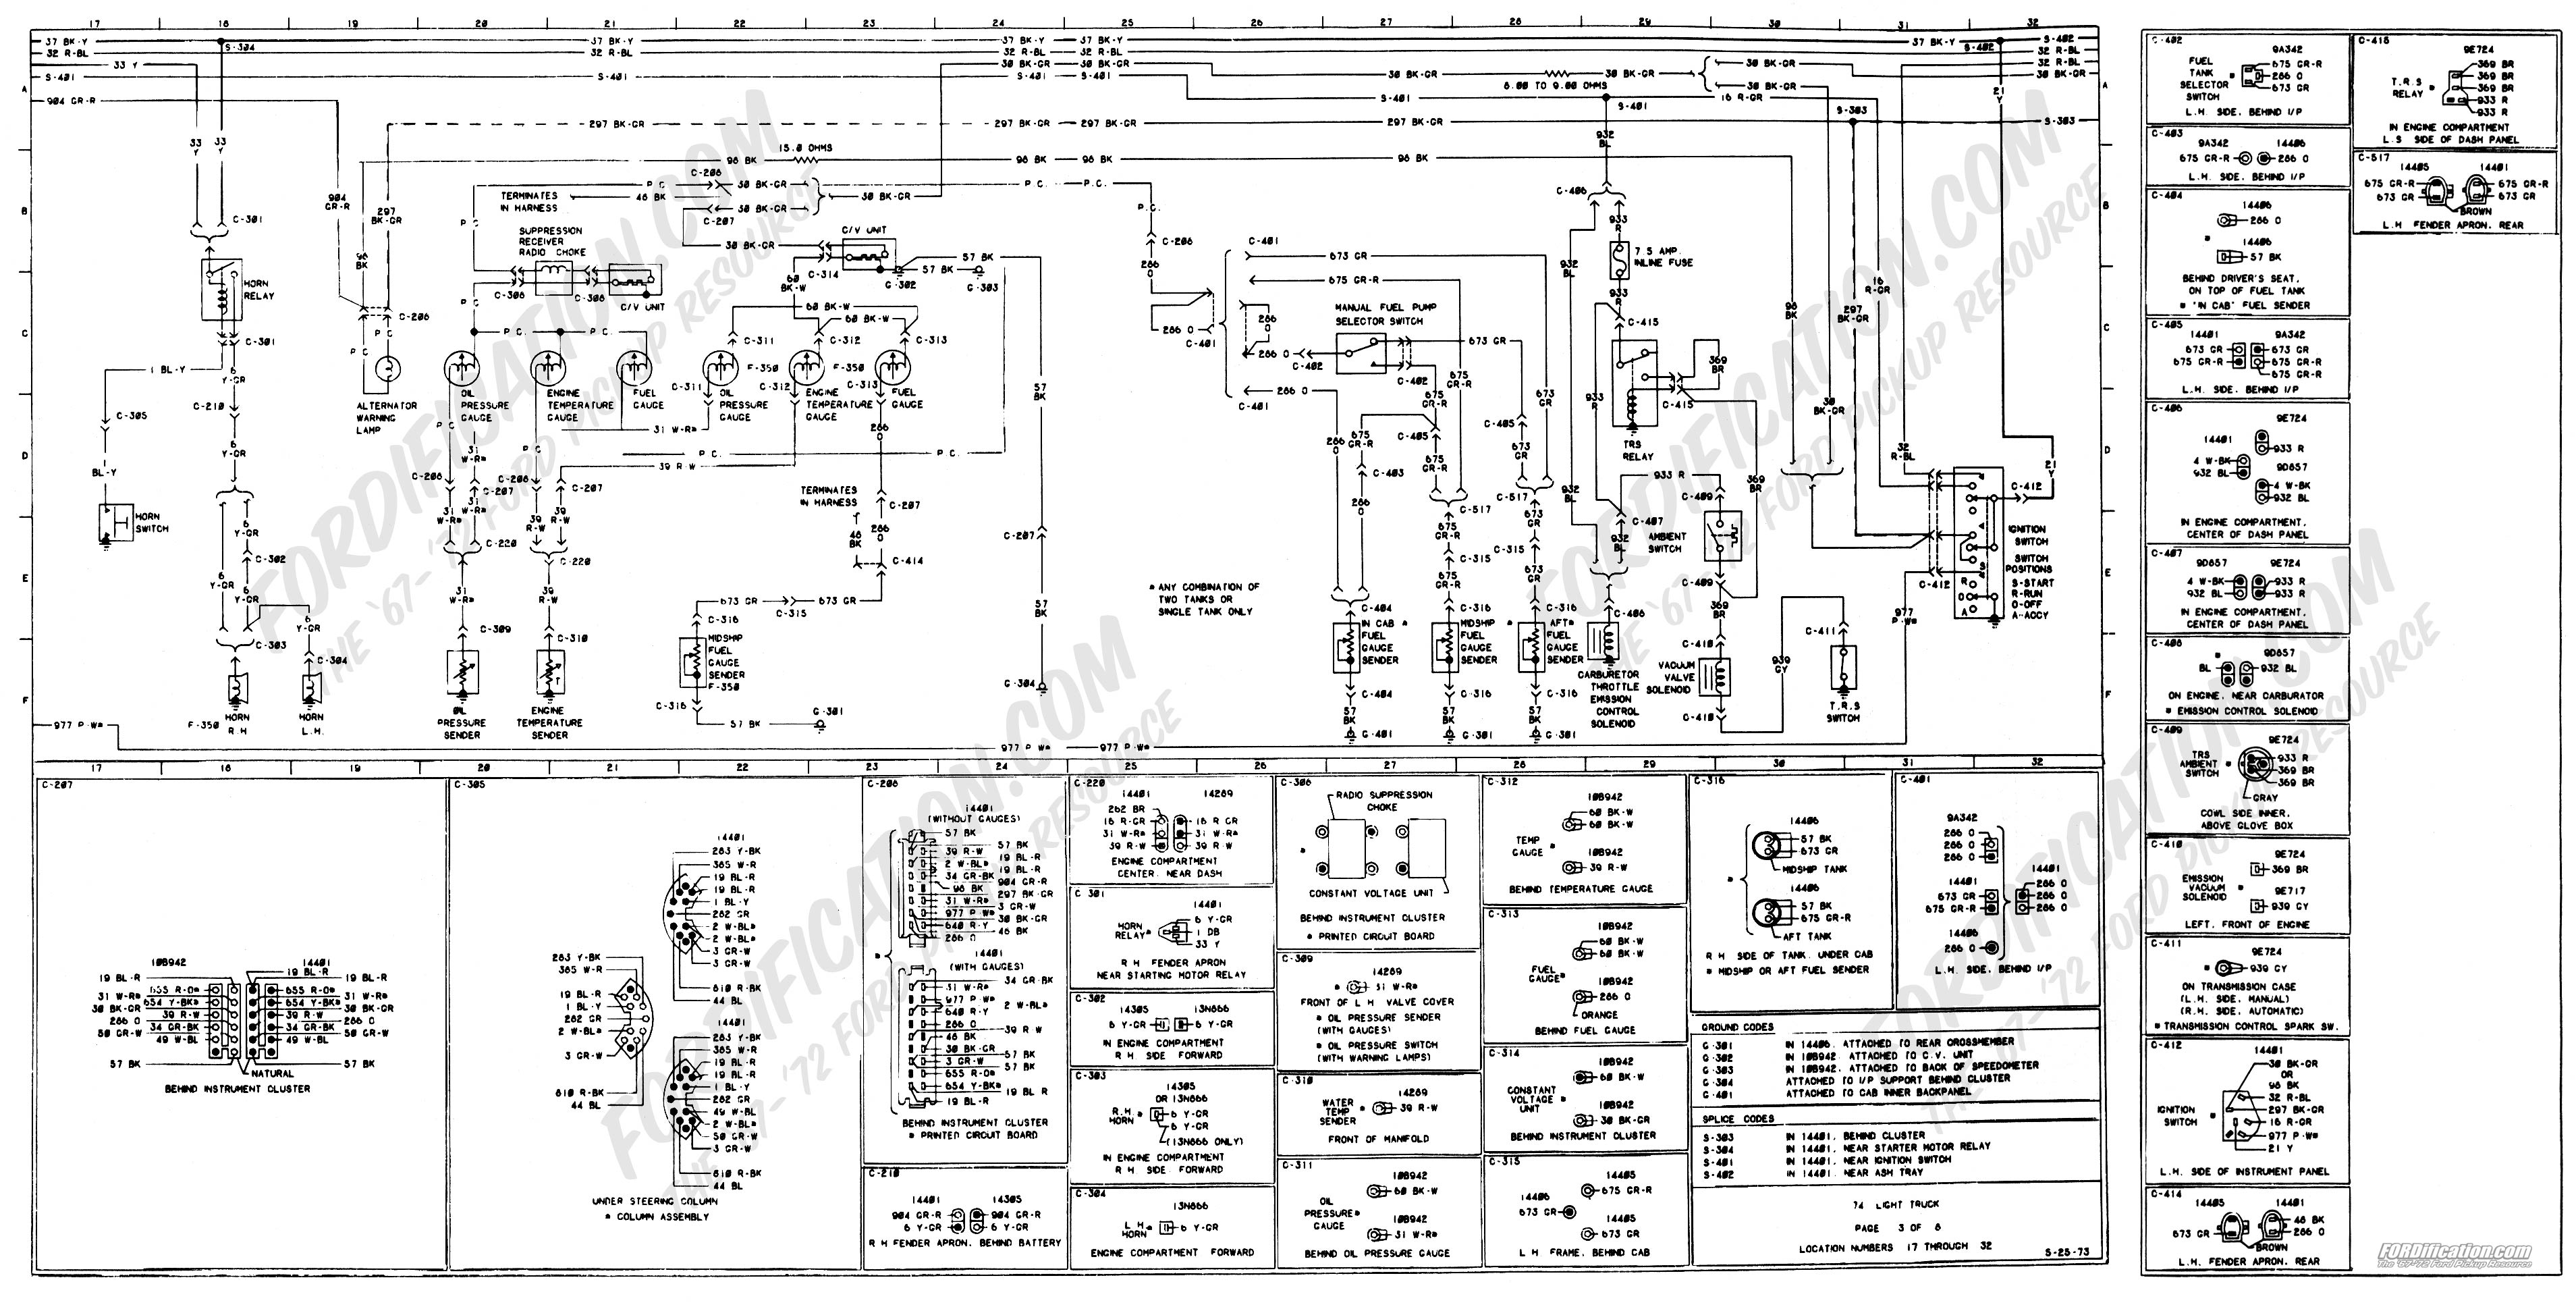 Ecu Wiring Schematics 2008 Ford F650 - Wiring Diagrams List on